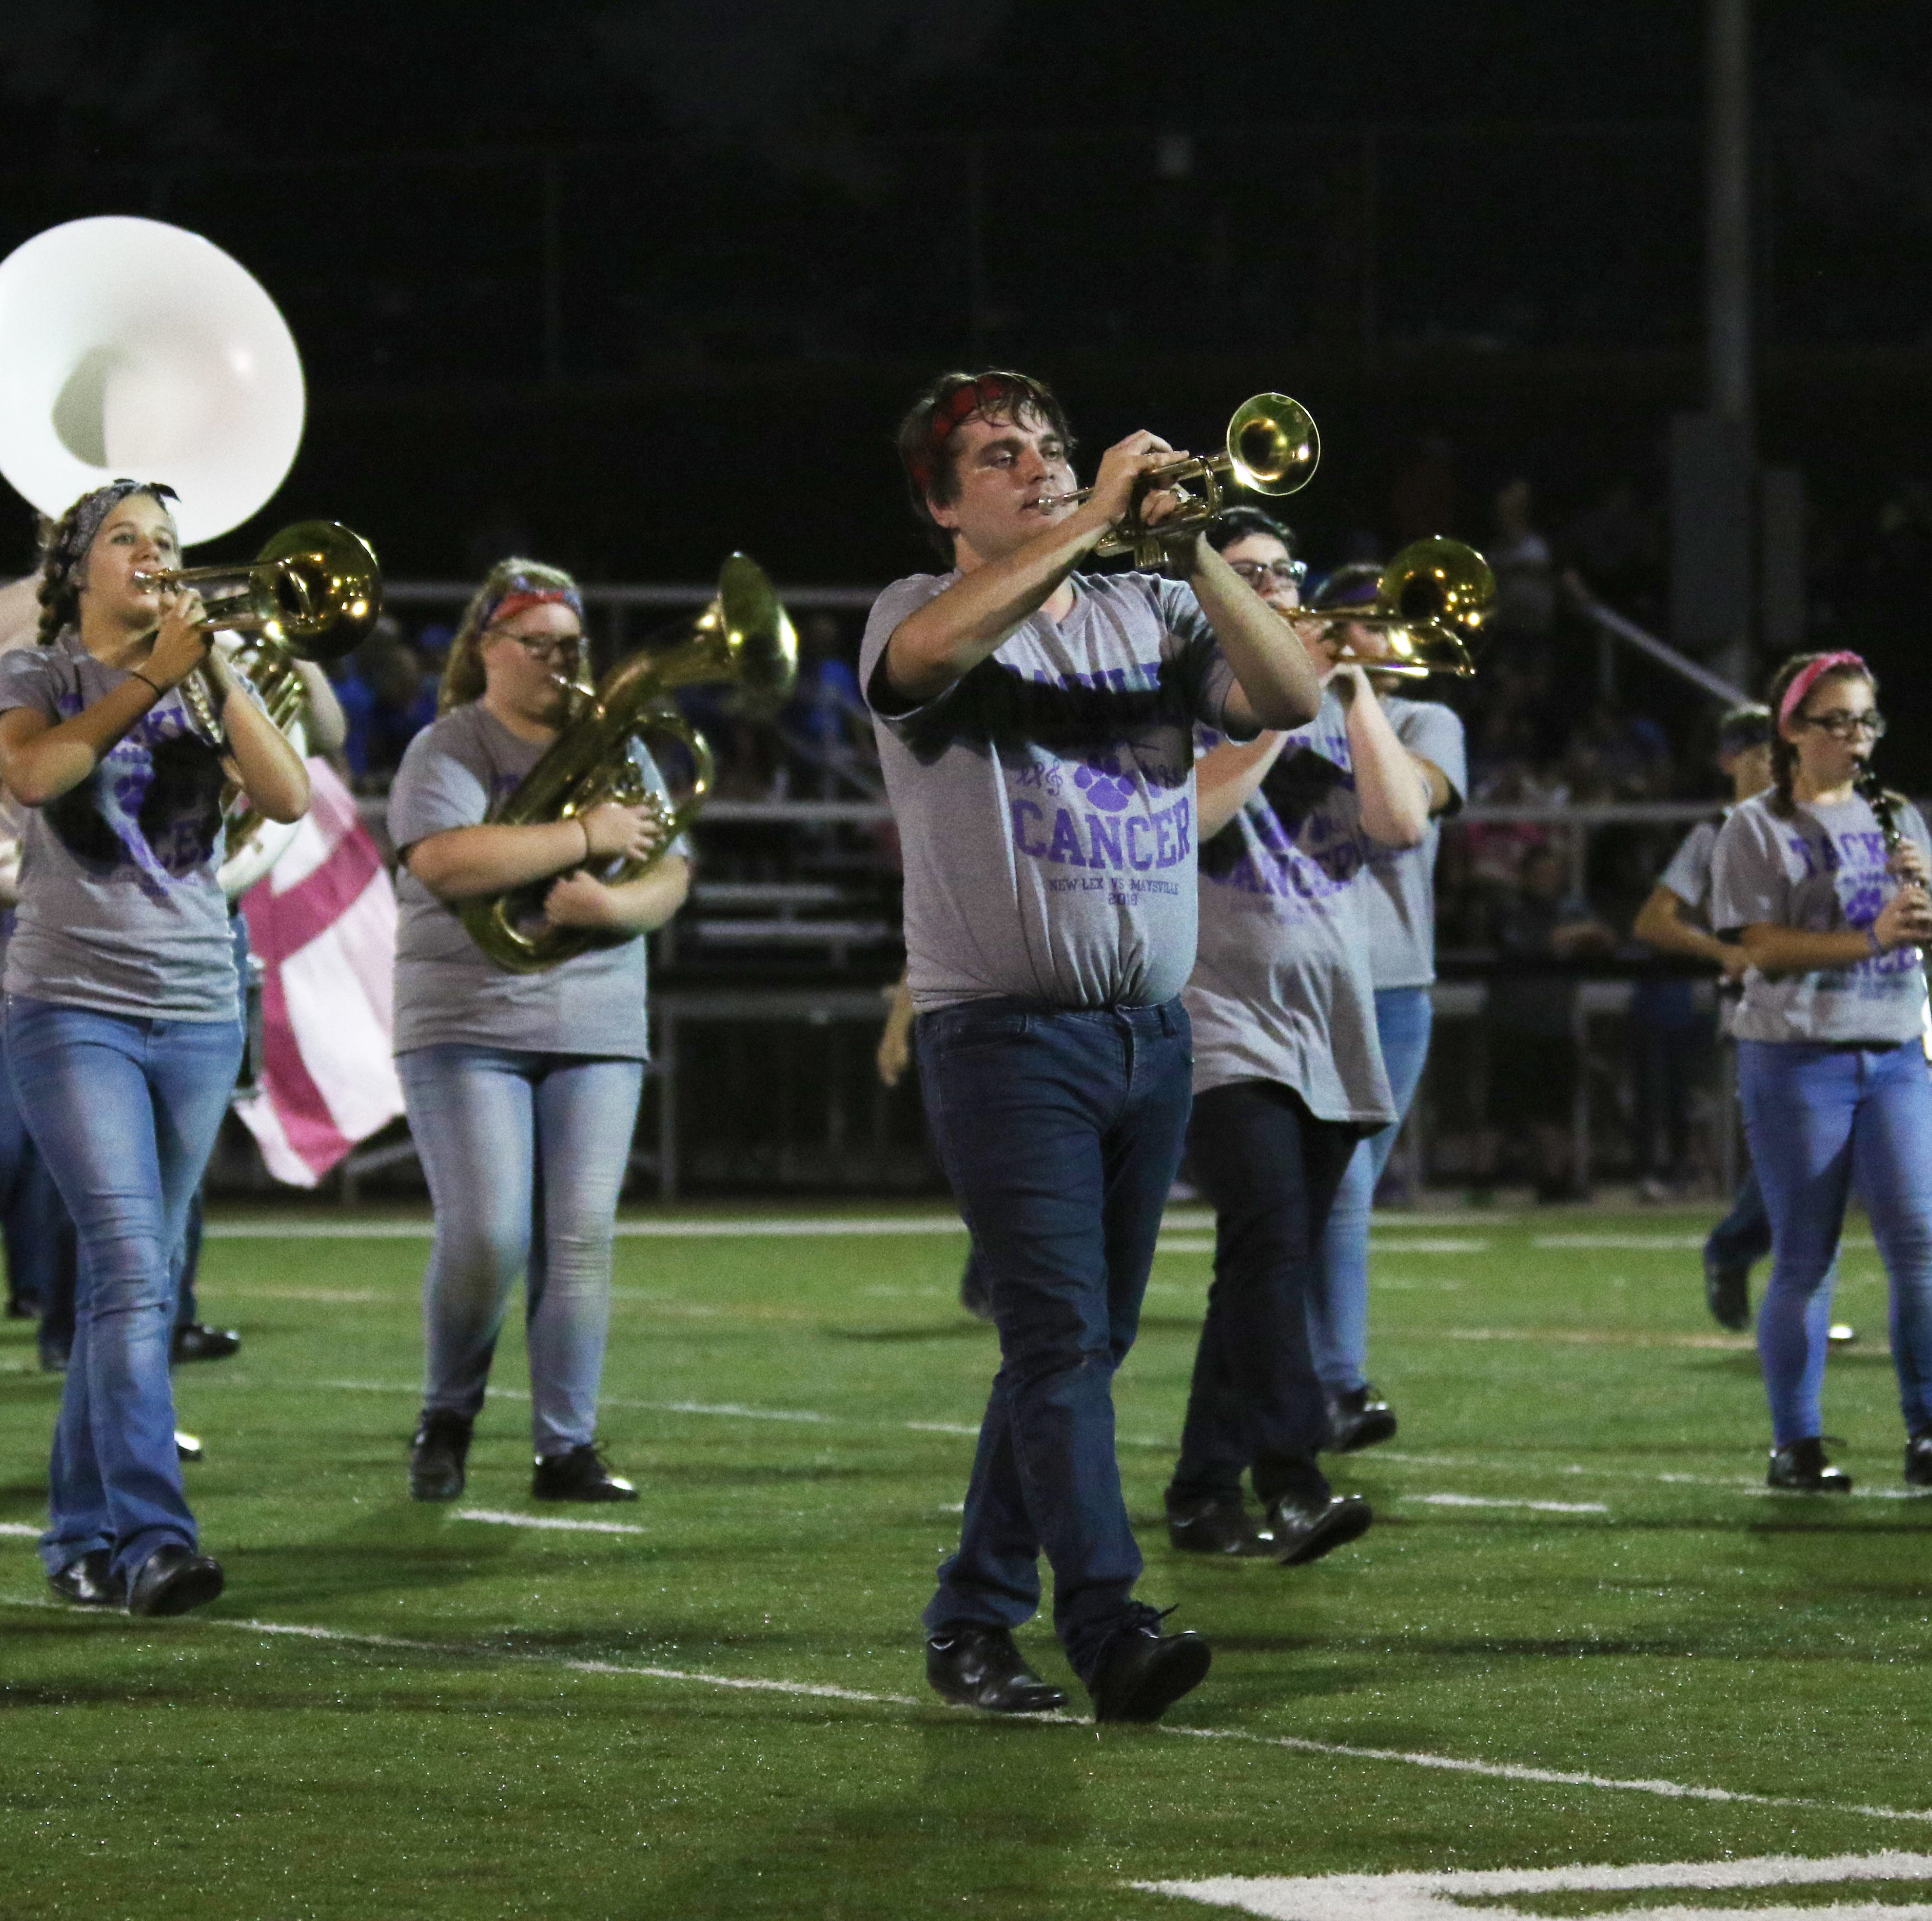 """The New Lexington High School marching band performs """"Distance From the Sun"""" during halftime of the Panthers' game against Maysville. The song was written by seniors Colin Ferguson, seen playing trumpet, and Clay Finck. The song was arranged for the marching band by Finck."""